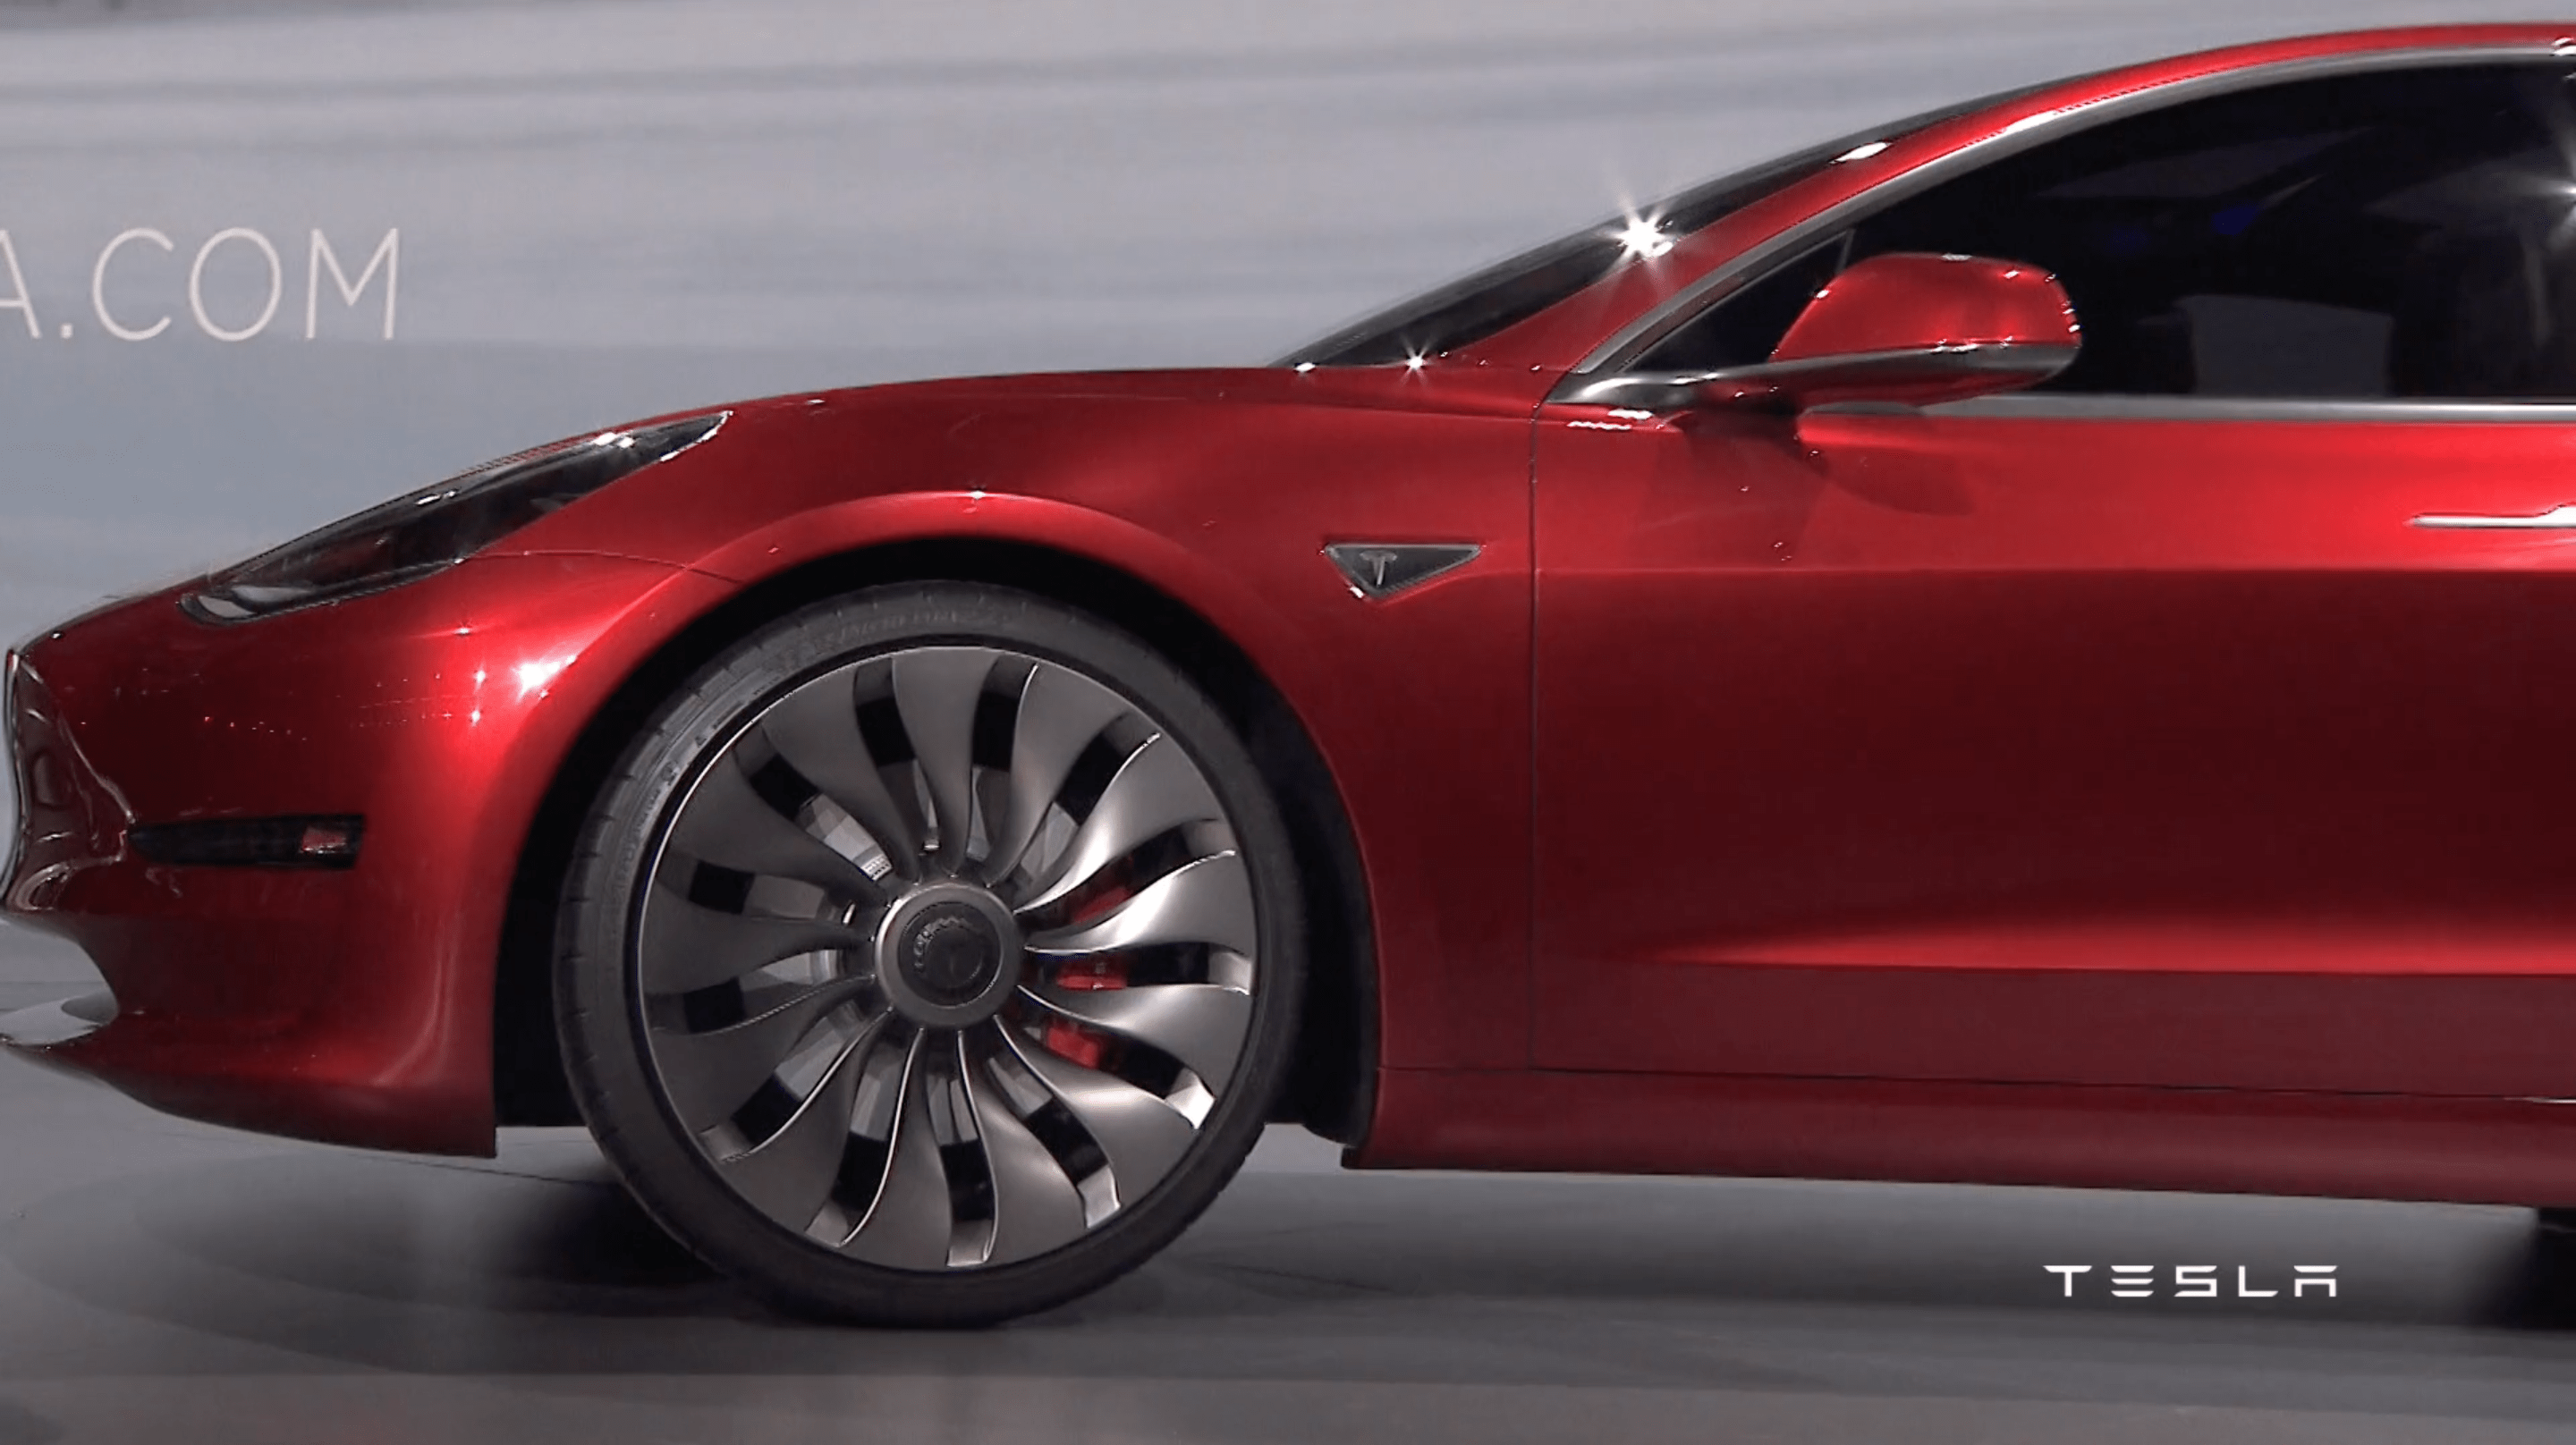 """As for other specs, the Model 3 comes with supercharging and Autopilot standard, but you'll have to pay extra for Autopilot's """"convenience features,"""" <a href=""""http://www.businessinsider.com/every-tesla-model-3-comes-with-autopilot-2016-4""""target=""""_blank"""">Musk previously told Business Insider</a>."""